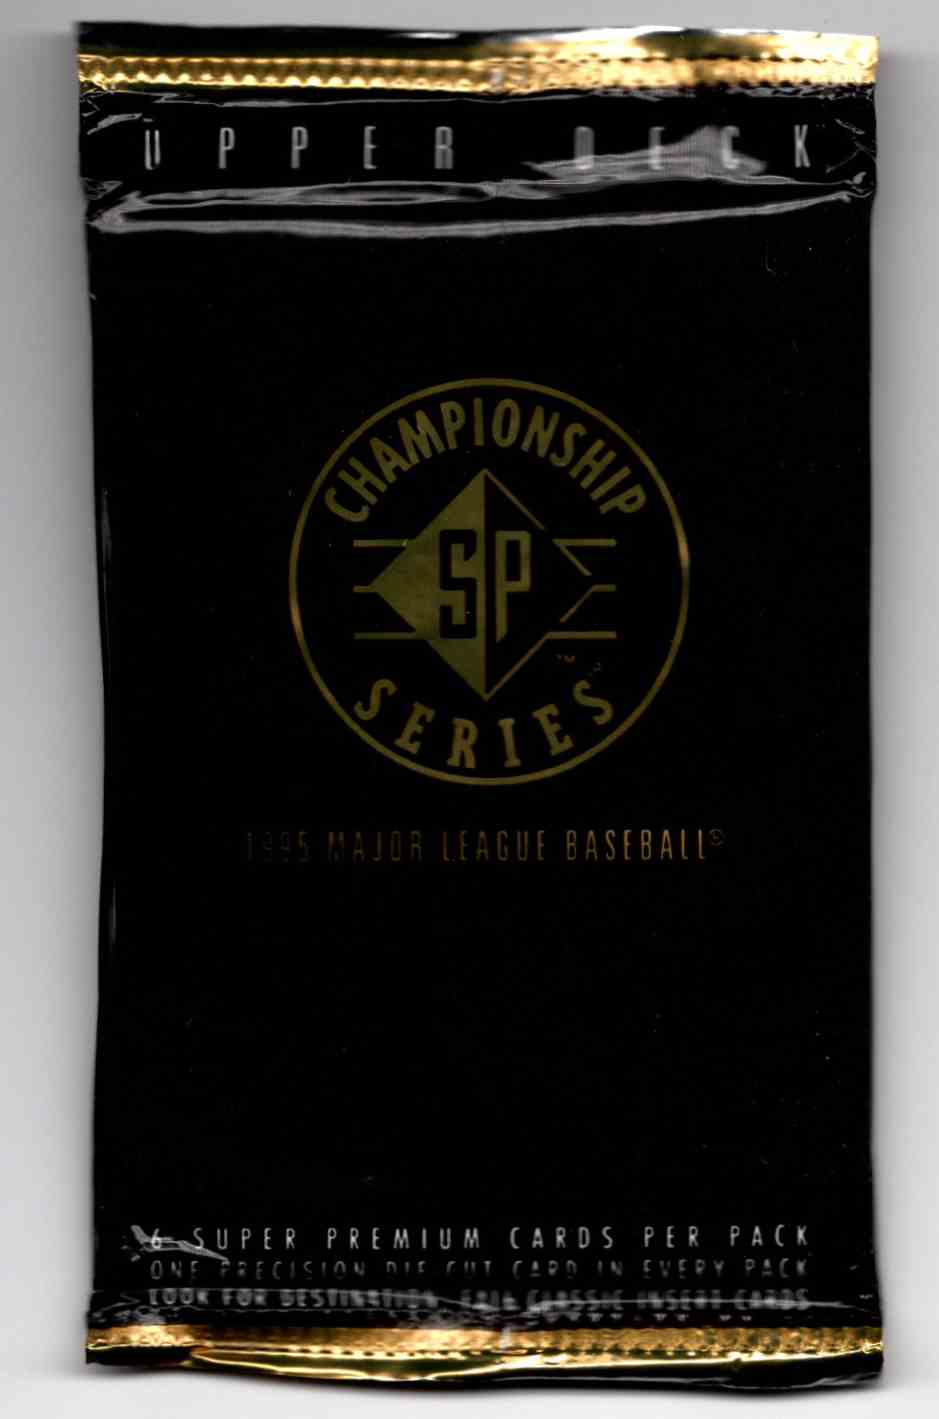 1995 SP Championship Unopened Pack #6 card front image